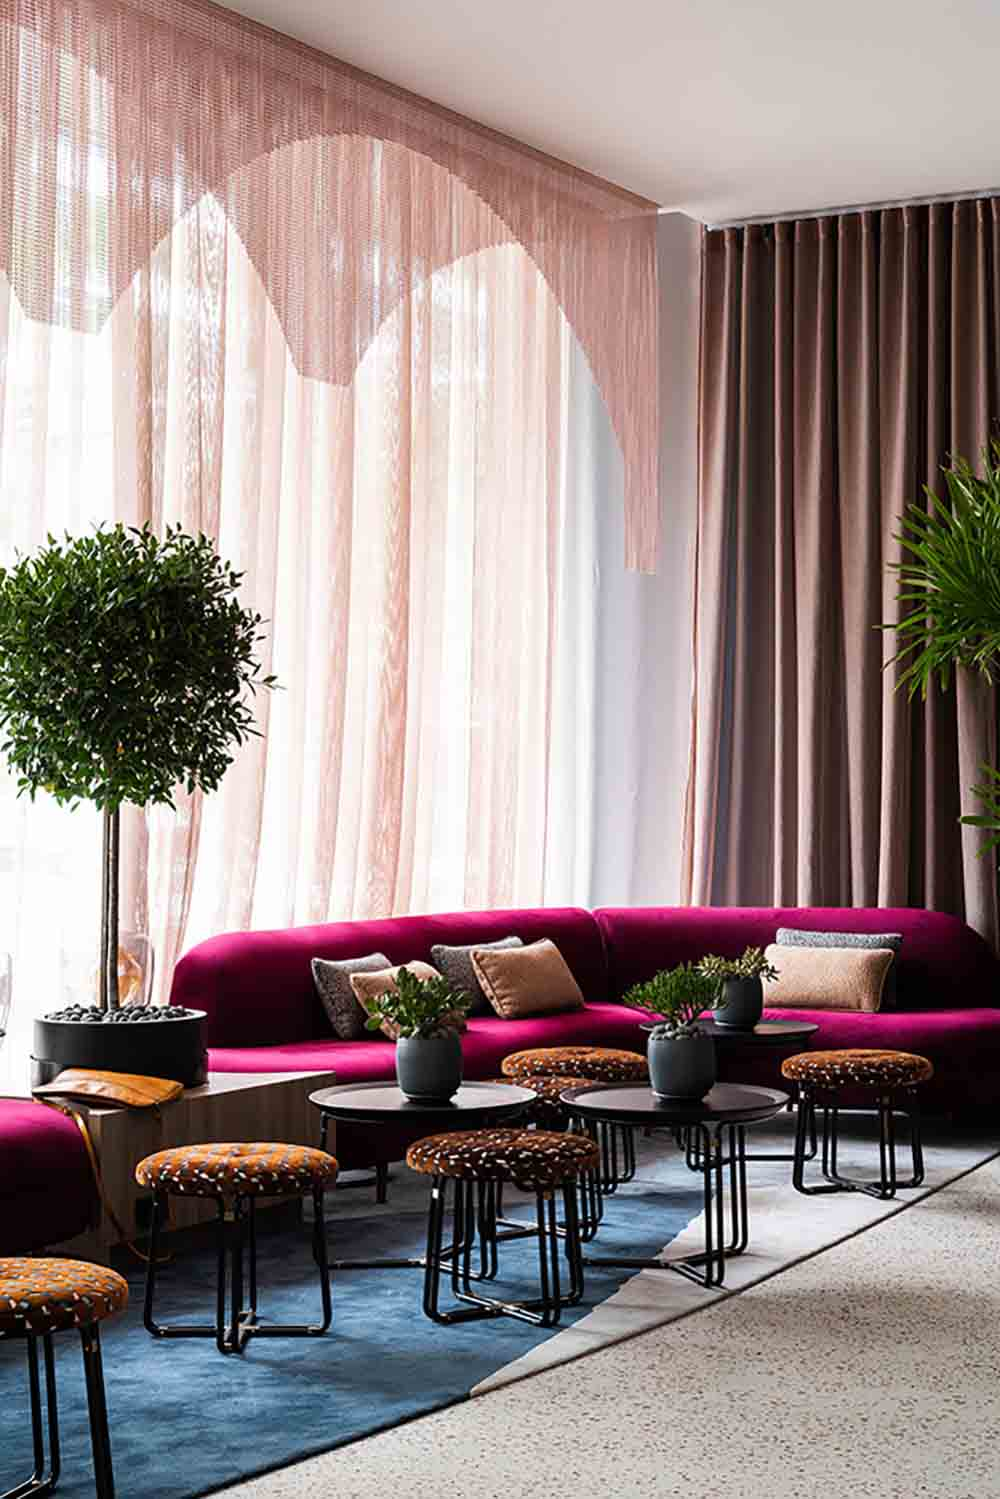 6_Ovolo_The_Valley_Woods_Bagot